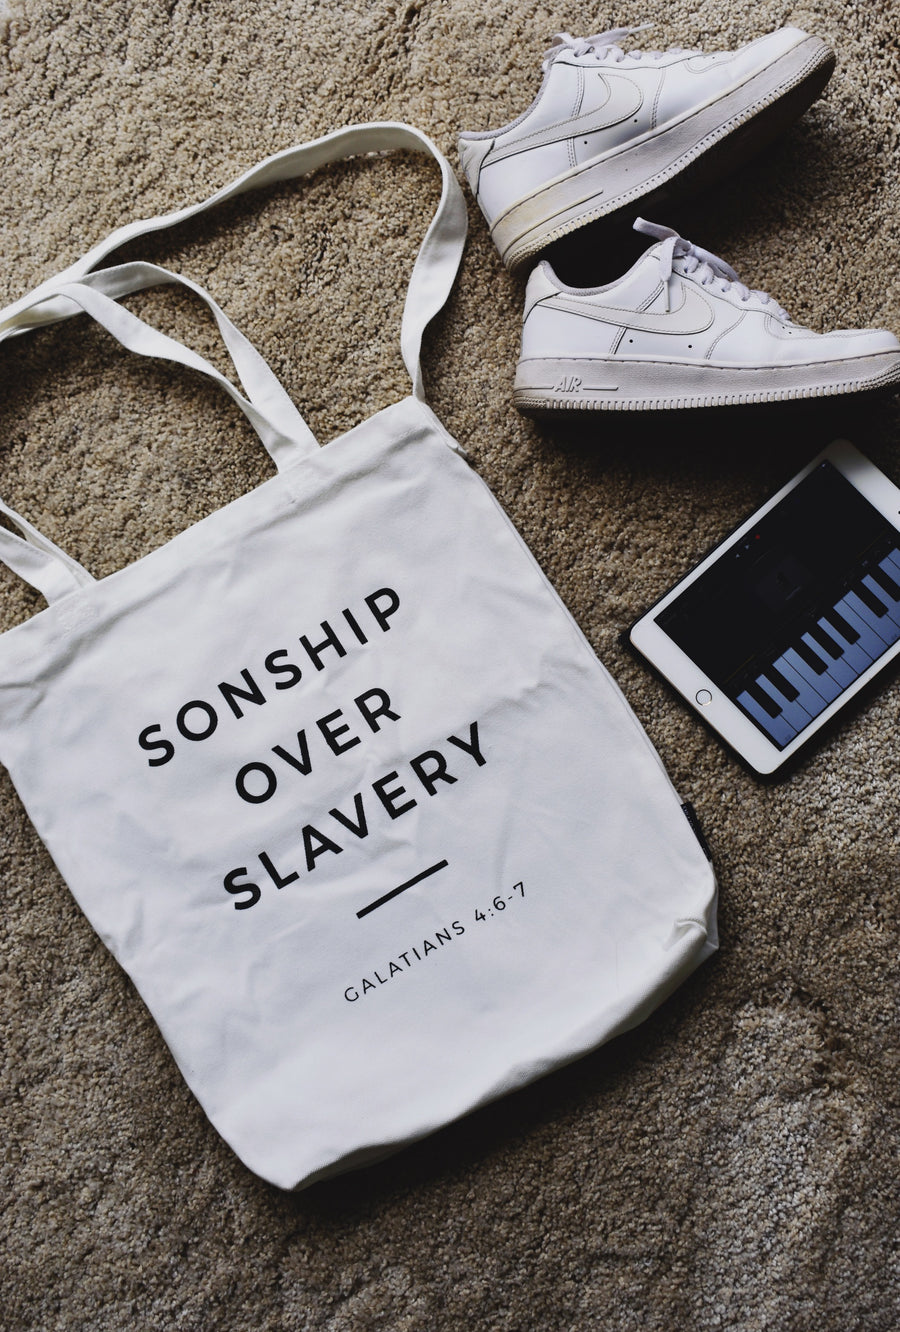 SONSHIP OVER SLAVERY Tote Bag - Prince of Pins